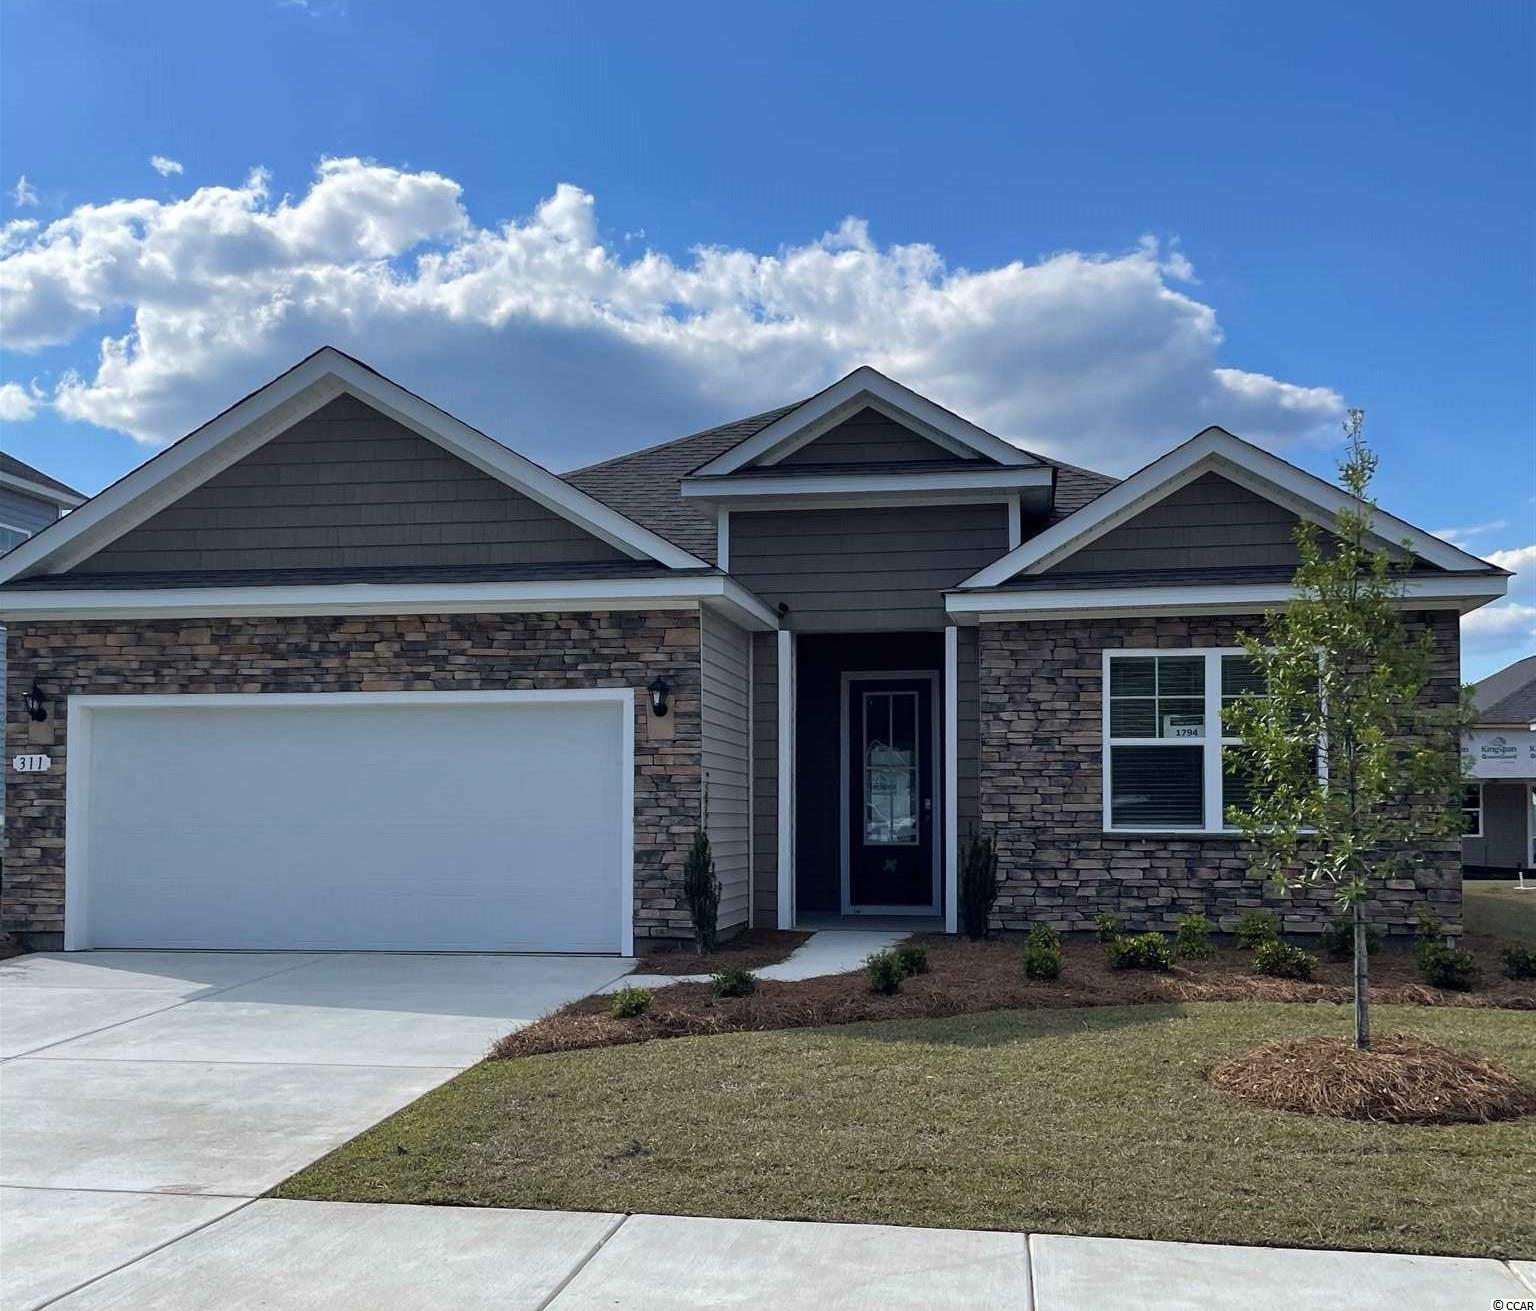 New phase now selling! Hidden Brooke is a beautiful community with an amenity that includes a pool with large deck area, clubhouse, exercise room, and fire pit overlooking the water. Minutes away from Highway 31 which provides quick and easy access to all of the Grand Strand's offerings: dining, entertainment, shopping, and golf! Tranquil setting just a short drive to the beach. Perfect for entertaining family and friends or just creating the ideal space for your daily needs, the Eaton is a very open single story home with a beautiful gourmet kitchen! Granite counters with an oversized island over looking the family room, white painted cabinets, stainless Whirlpool appliances including a gas range, and a walk-in pantry. The split bedroom floorplan creates a private primary bedroom suite that offers a walk-in closet, dual vanity, 5' shower, and two linen closets! Relax and enjoy the warm coastal weather on the 26'x9' covered rear porch! This home is a must see. It gets better- this is America's Smart Home!  Control the thermostat, front door light and lock, and video doorbell from your smartphone or with voice commands to Alexa.  *Photos are of a similar Eaton home.  (Home and community information, including pricing, included features, terms, availability and amenities, are subject to change prior to sale at any time without notice or obligation. Square footages are approximate. Pictures, photographs, colors, features, and sizes are for illustration purposes only and will vary from the homes as built. Equal housing opportunity builder.)